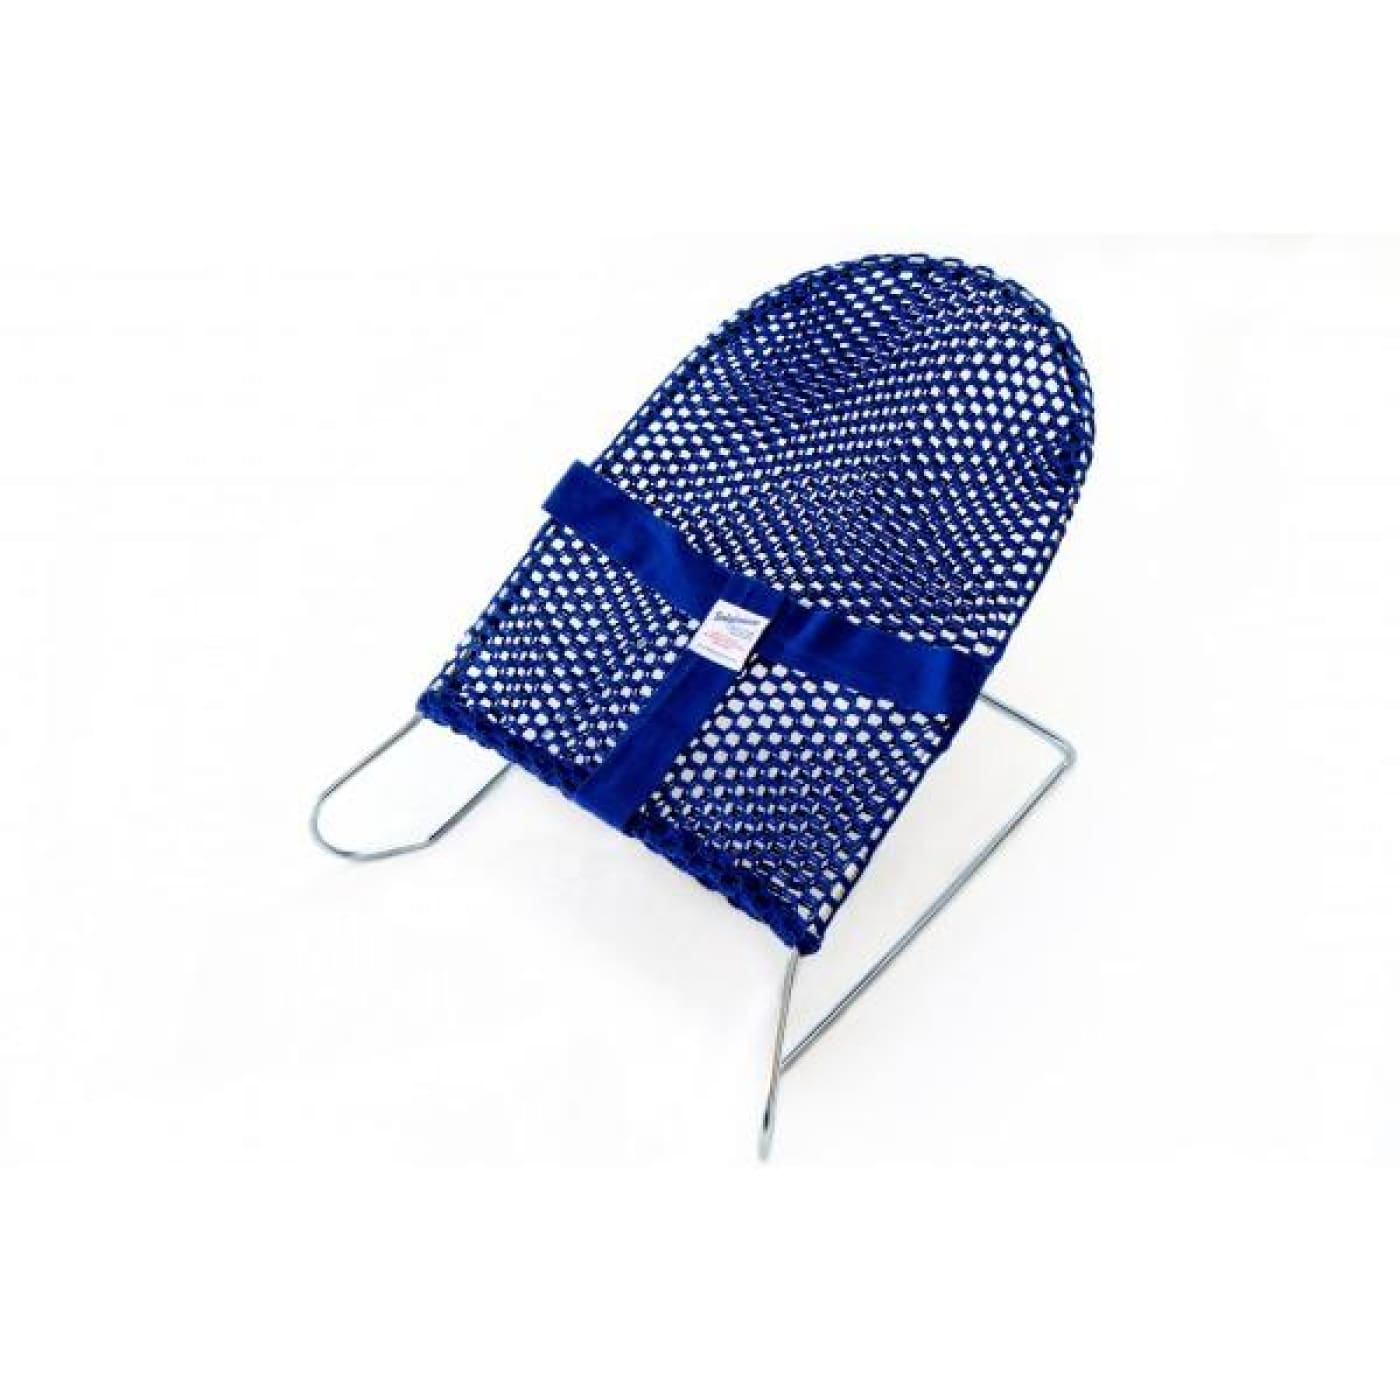 Love N Care Baby Bounce wire Bouncer - Navy - TOYS & PLAY - ROCKERS/BOUNCERS